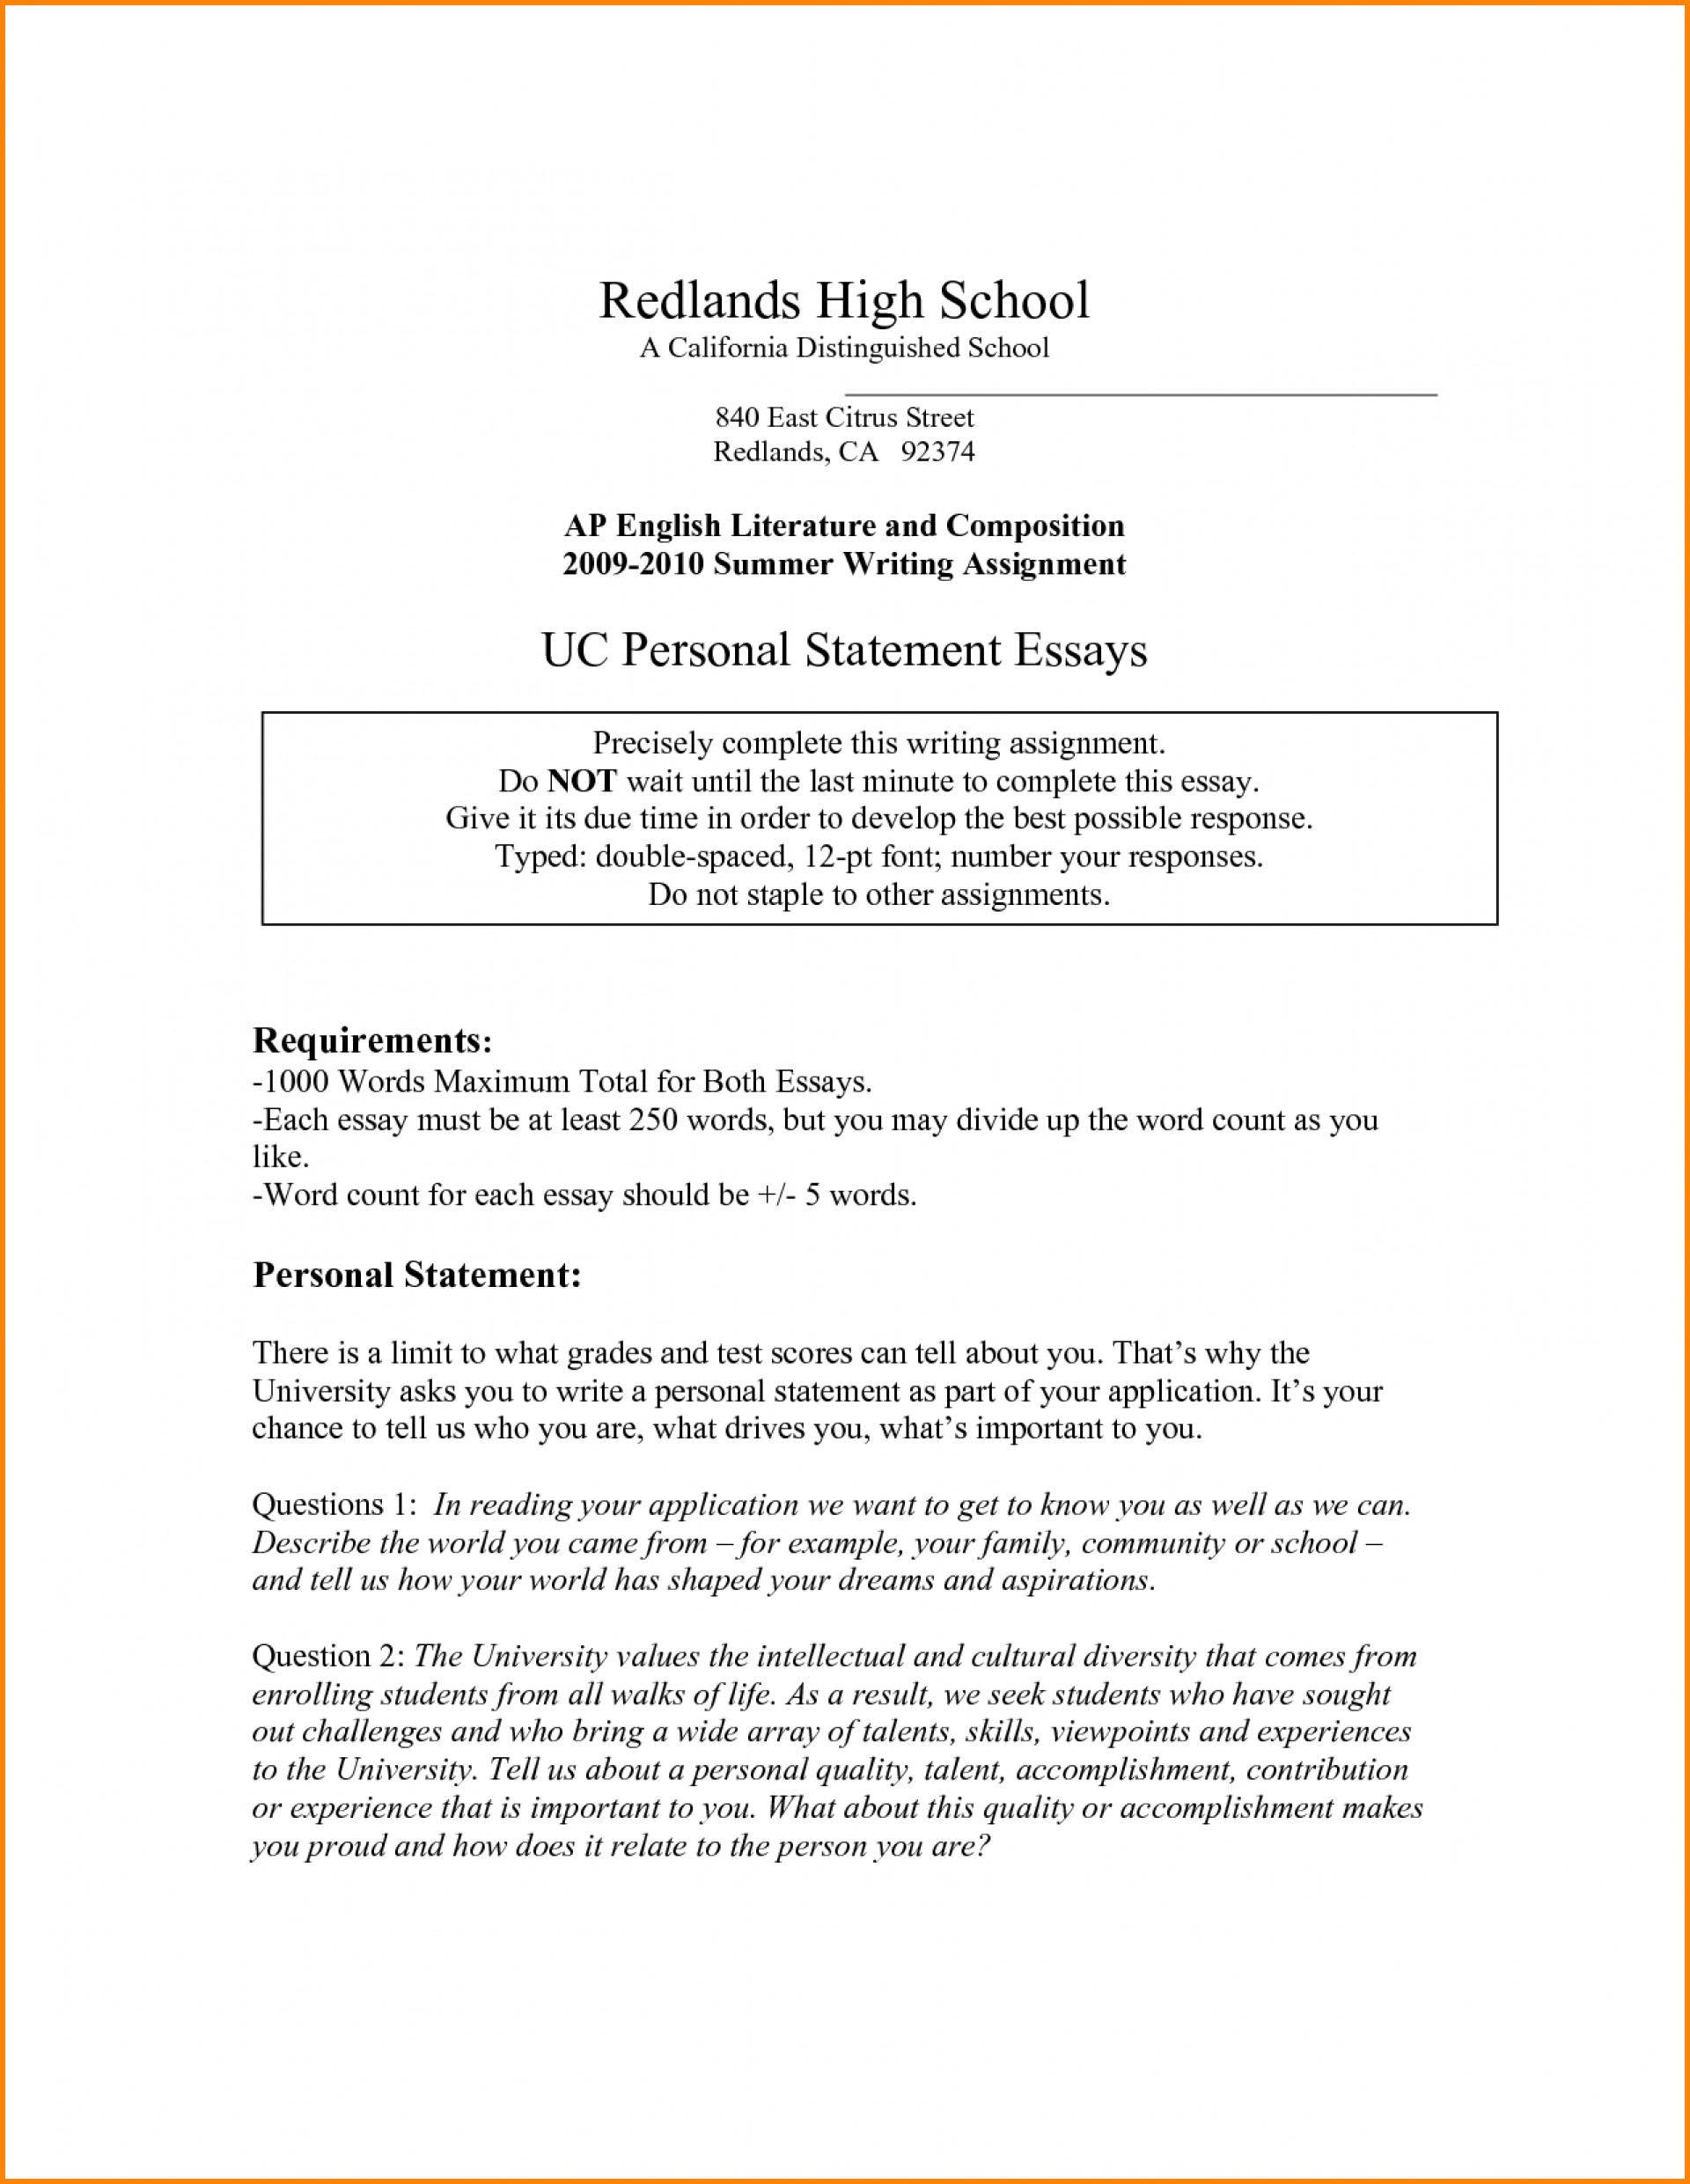 015 Uc Personal Statement Examples Essay Example Sample Imposing Essays Prompt 1 6 3 1920